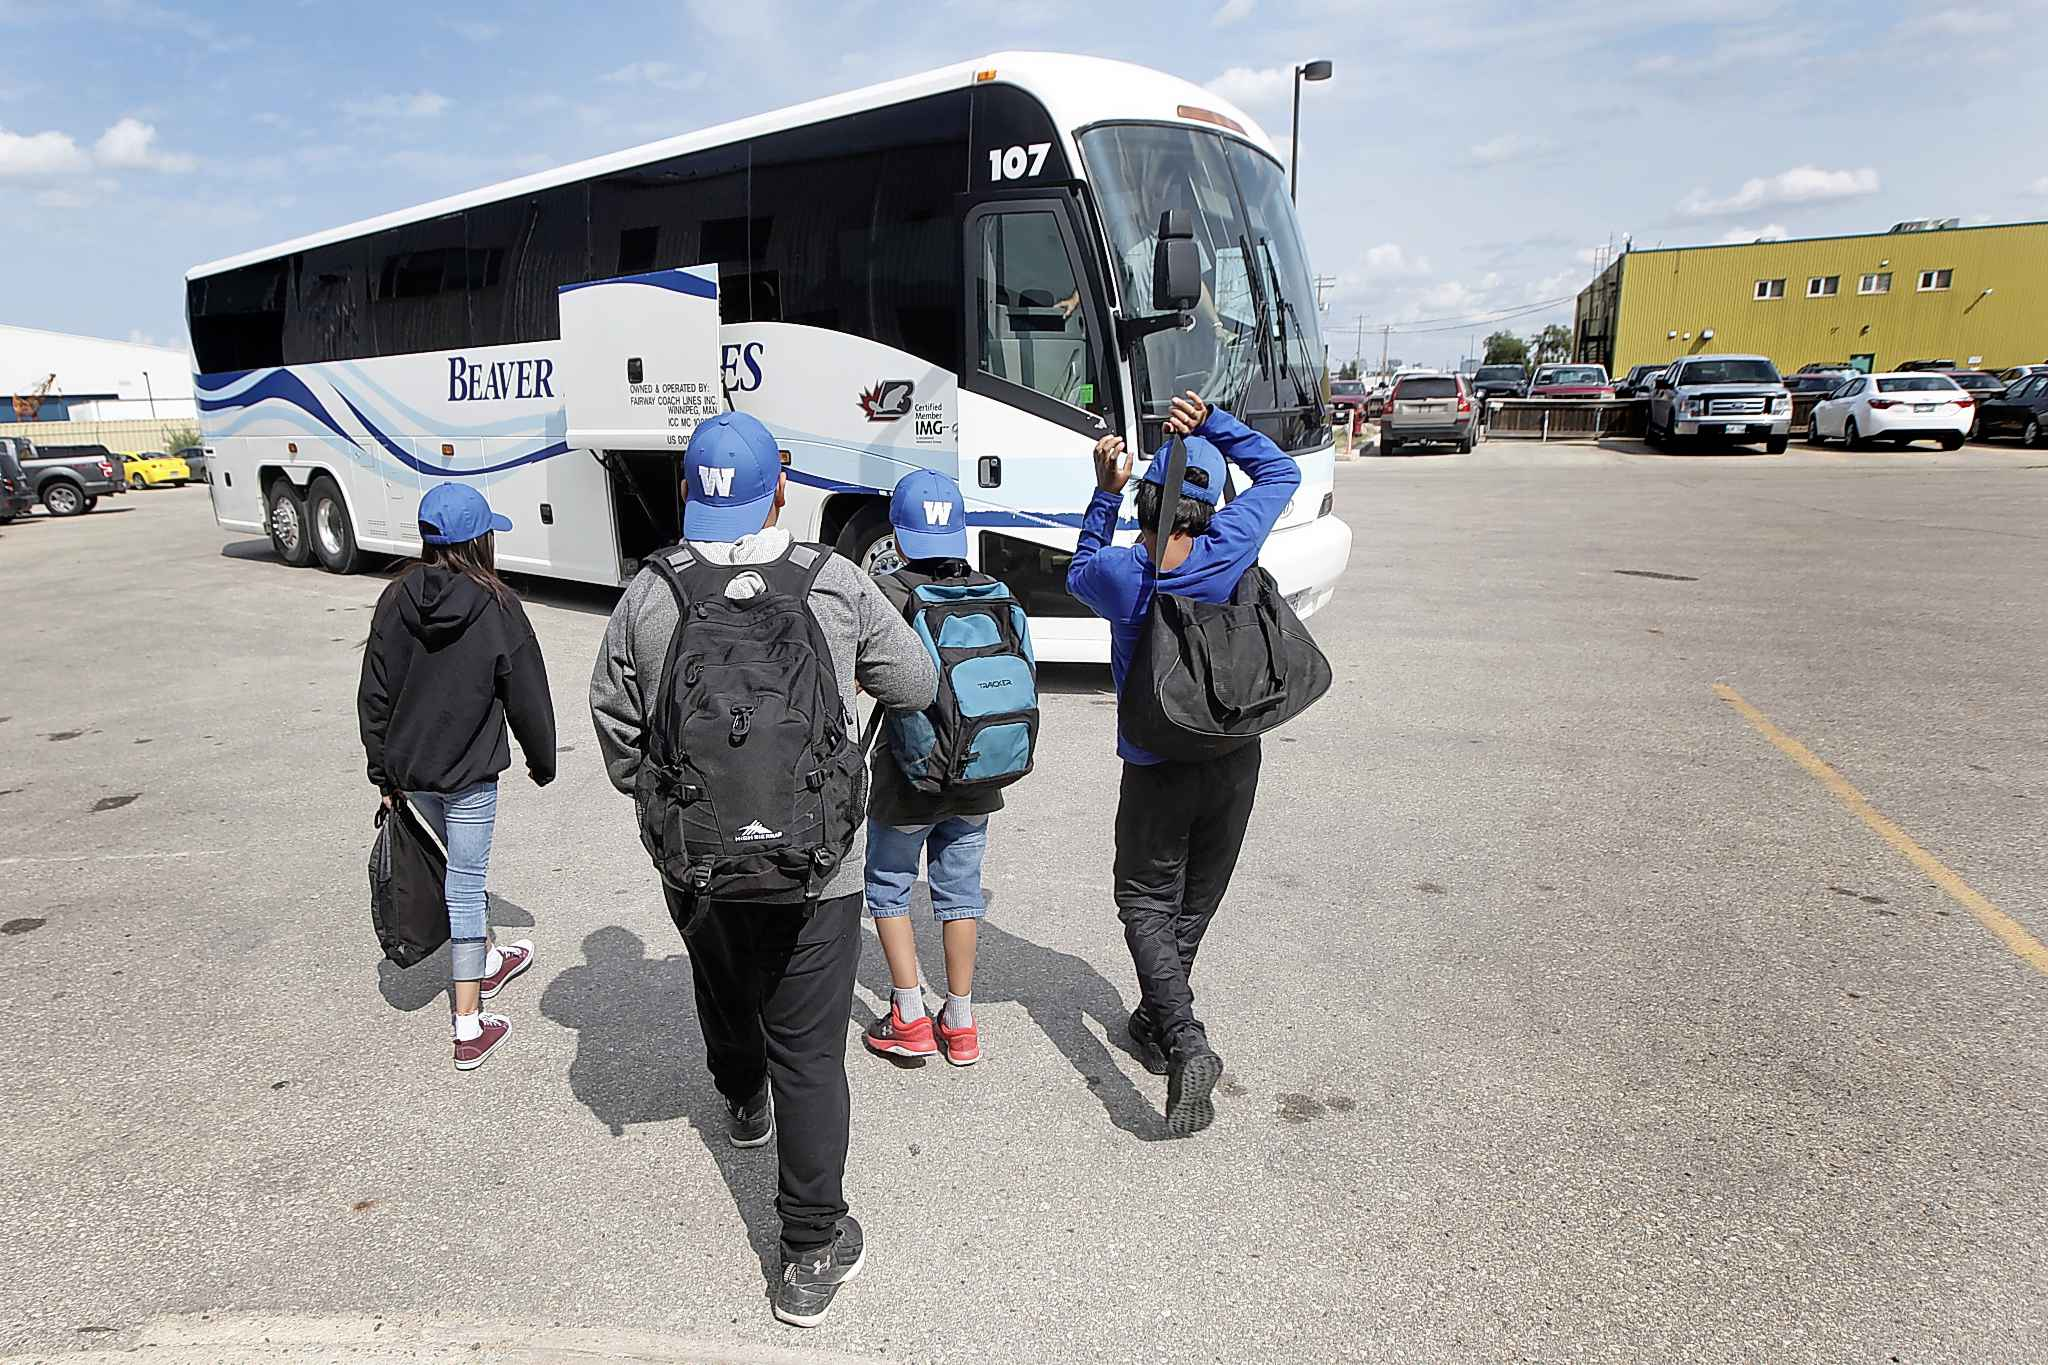 The children head towards a chartered bus to attend the Bombers/Lions game.</p>